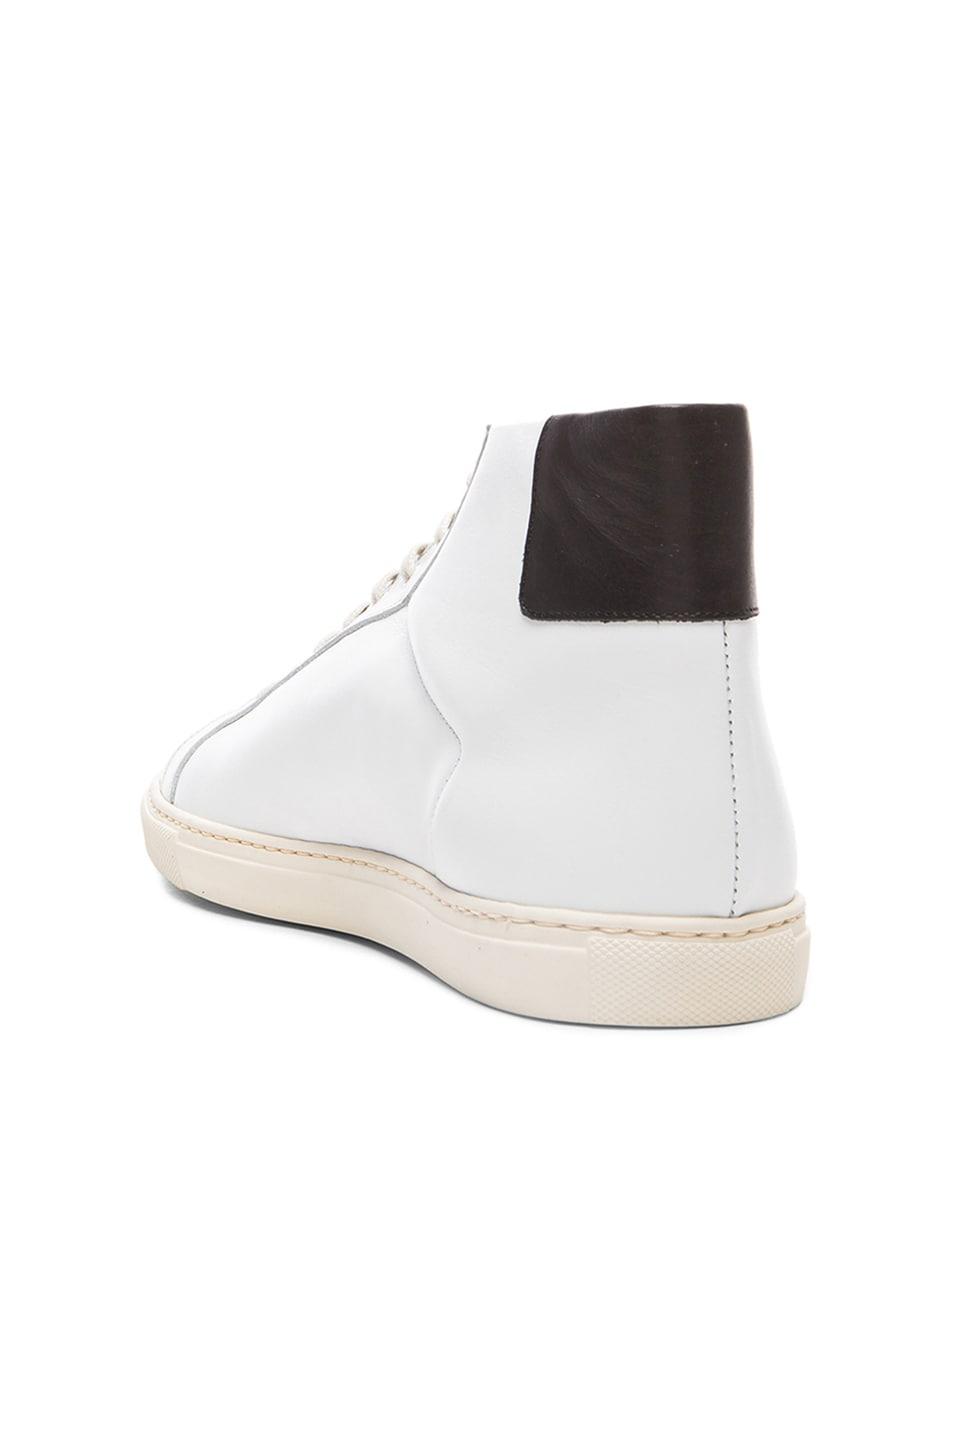 8cd4eb39d9f3b Image 3 of Common Projects Achilles Retro Leather High Tops in Black   White